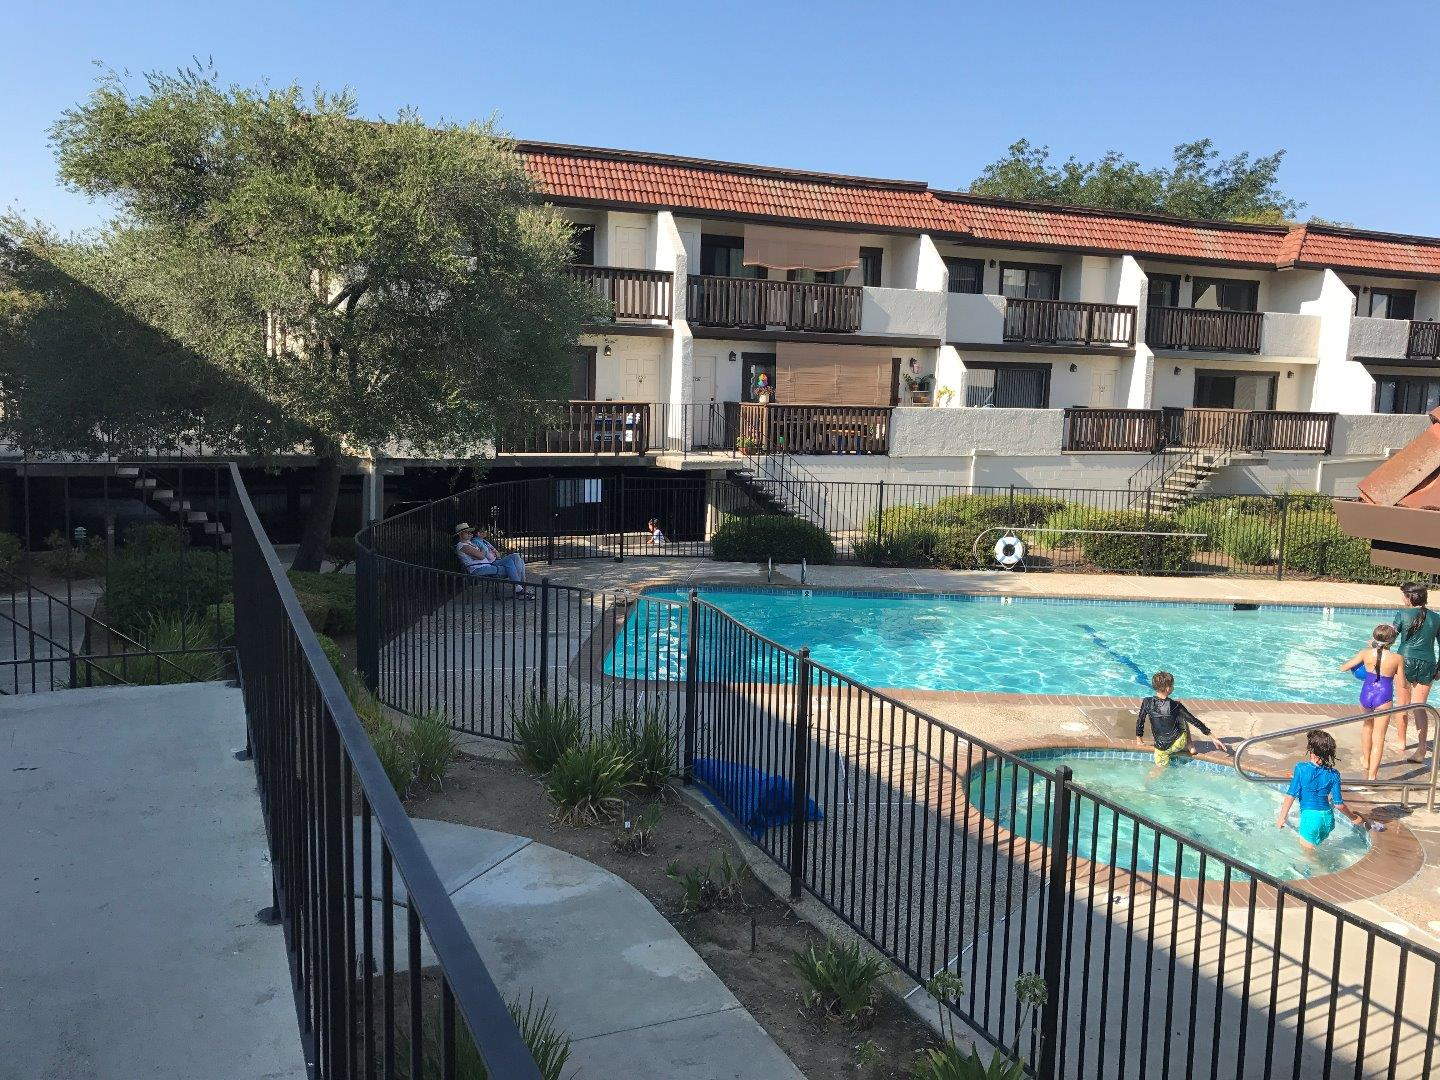 7259 Via Vico, SAN JOSE, CA 95129